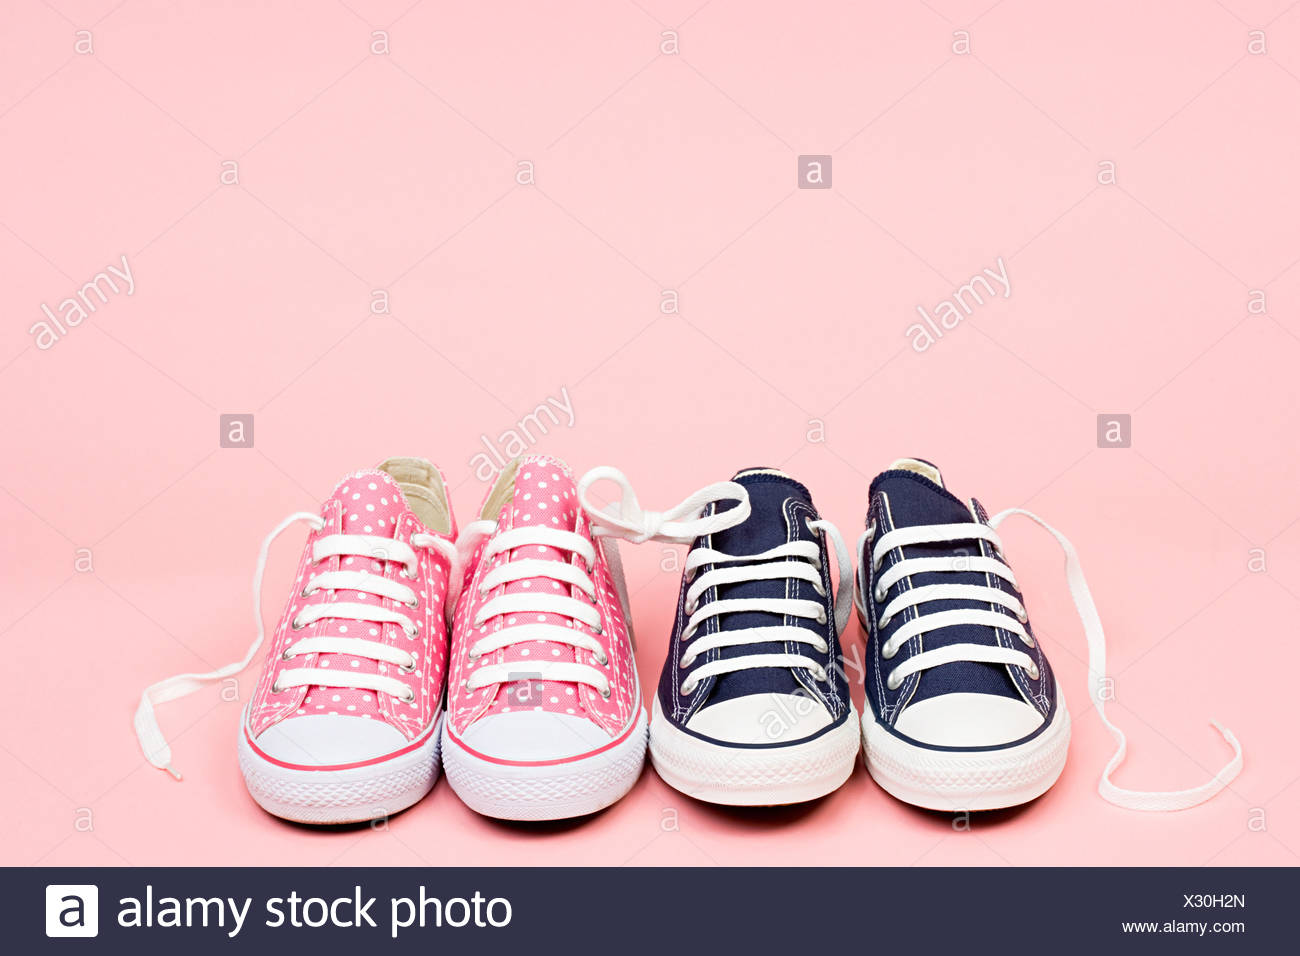 Trainers in a row - Stock Image